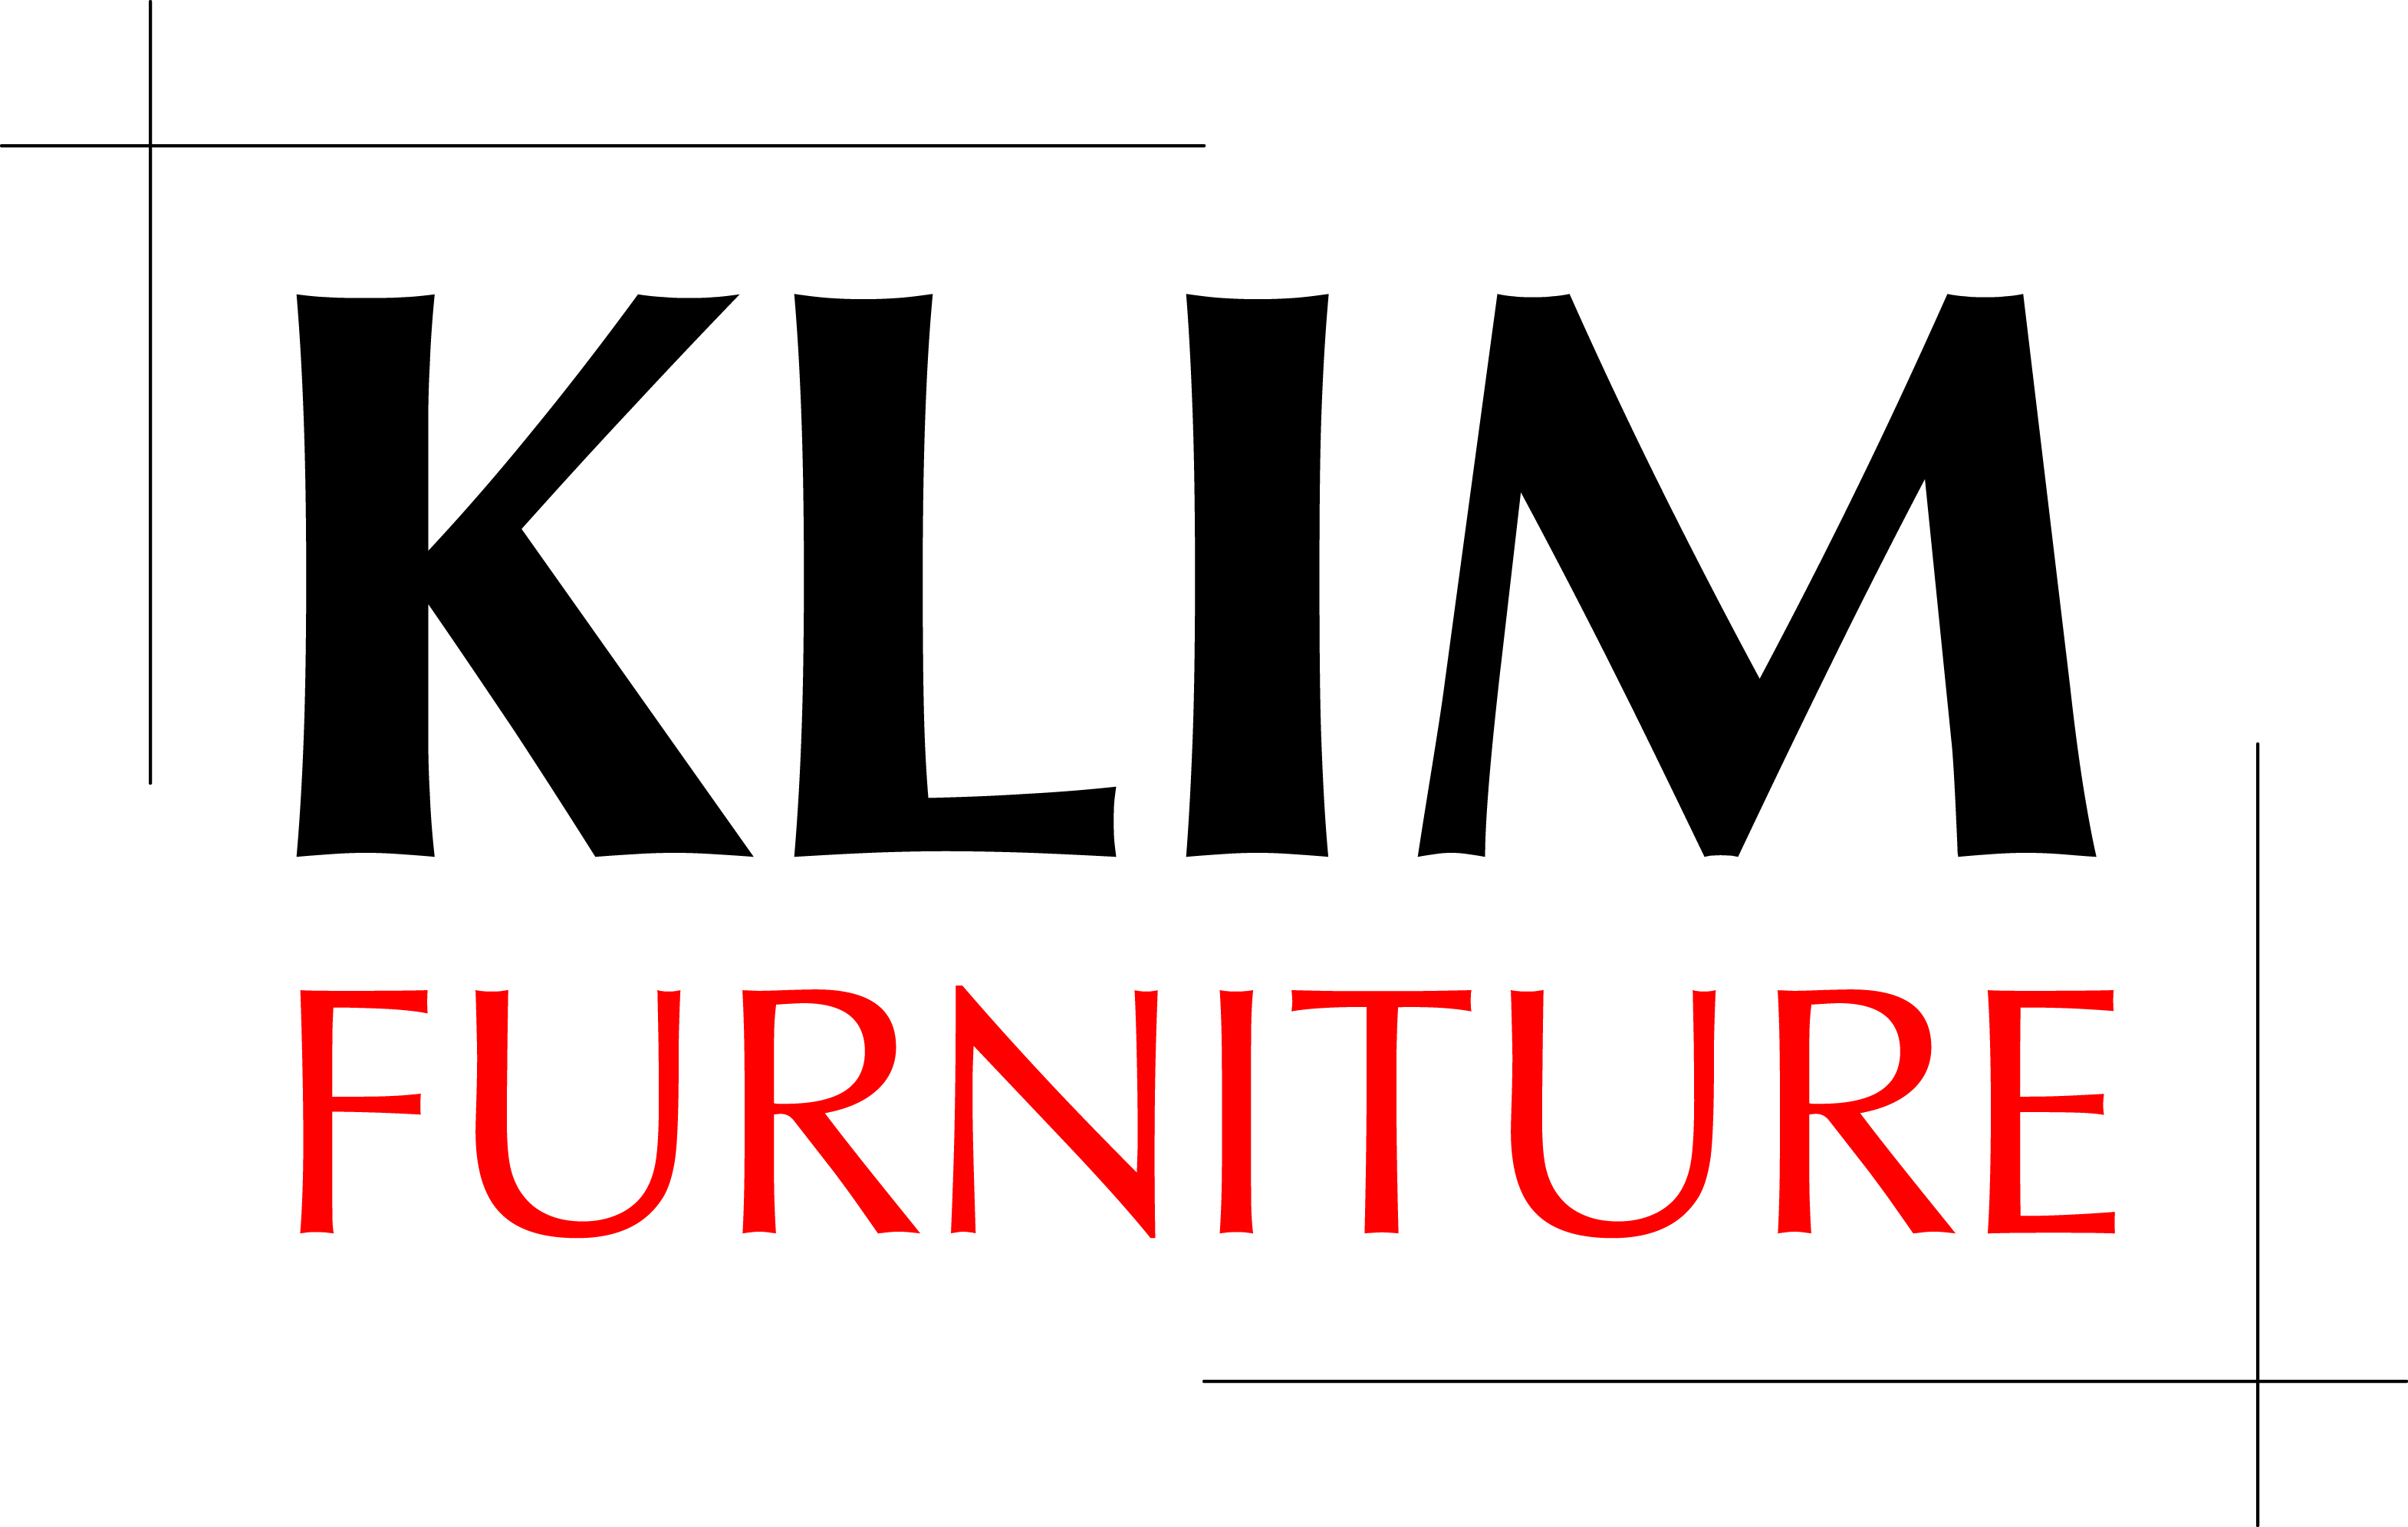 Klim Furniture - Design din personlige reol